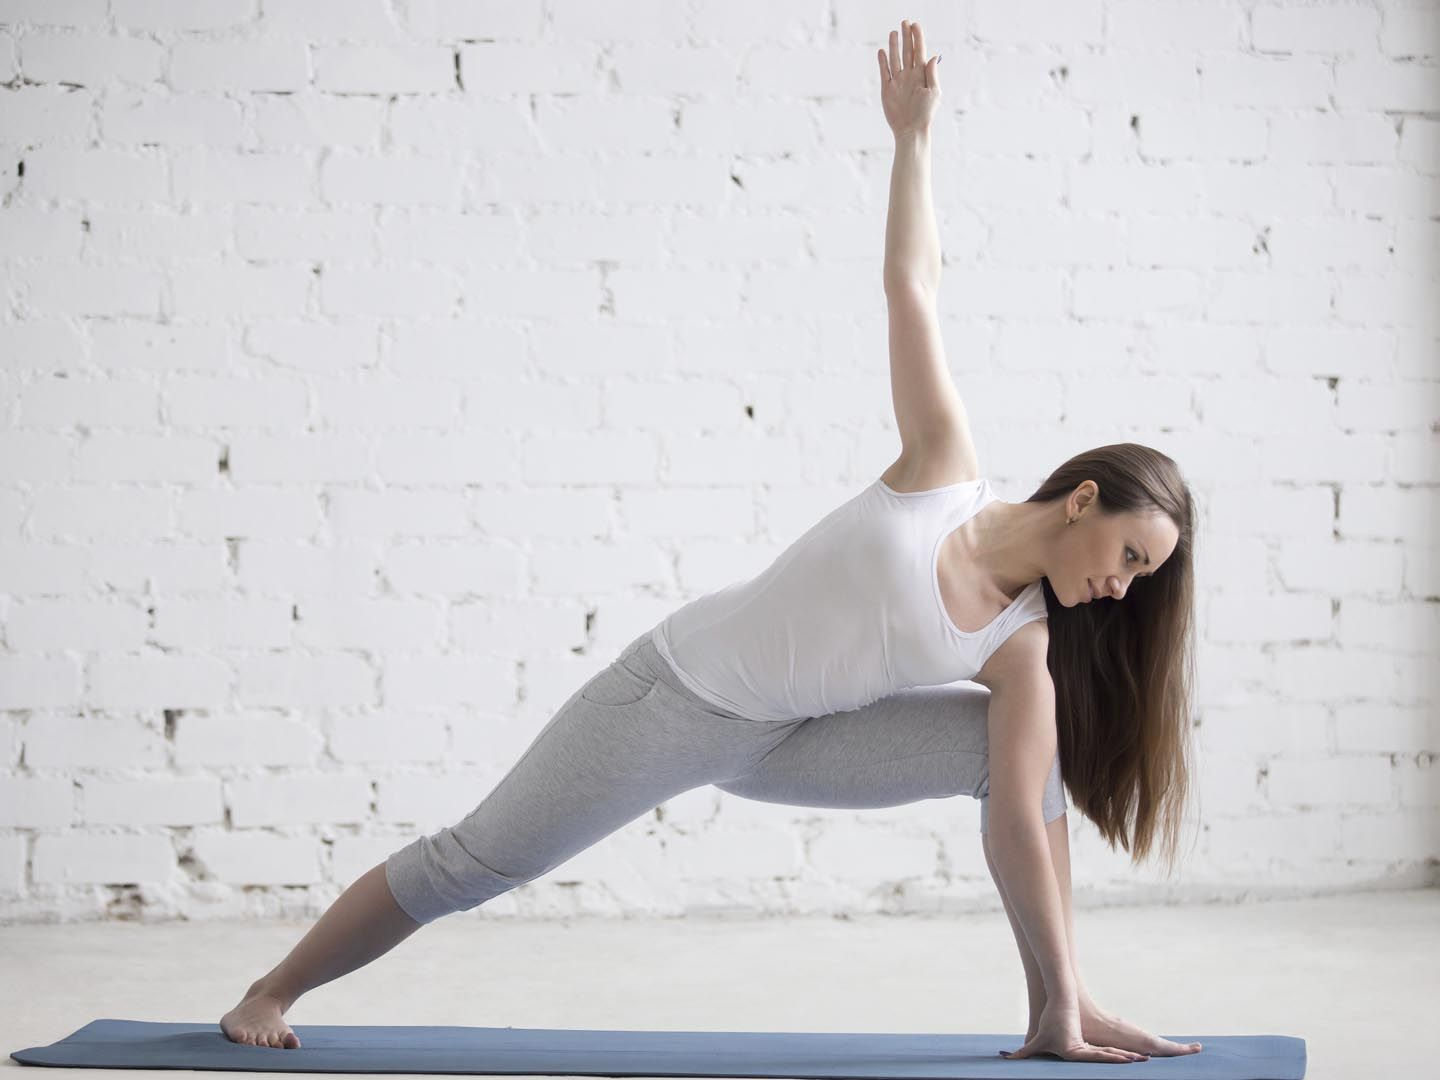 A Relatively Advanced Yoga Pose The Extended Side Angle Offers An Invigorating Combination Of